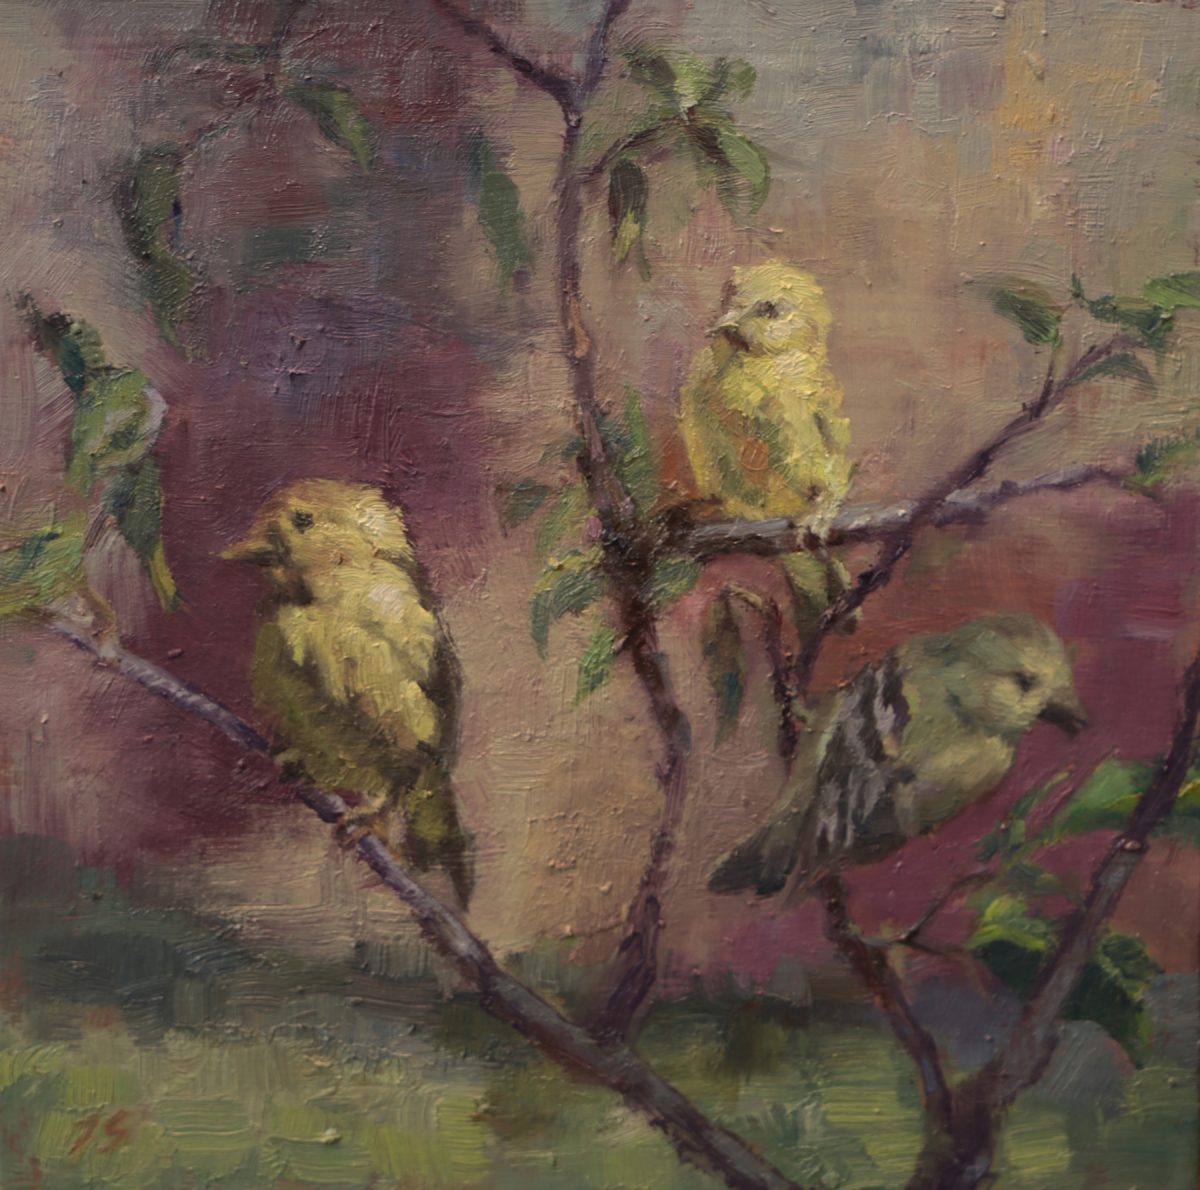 The Three Finches